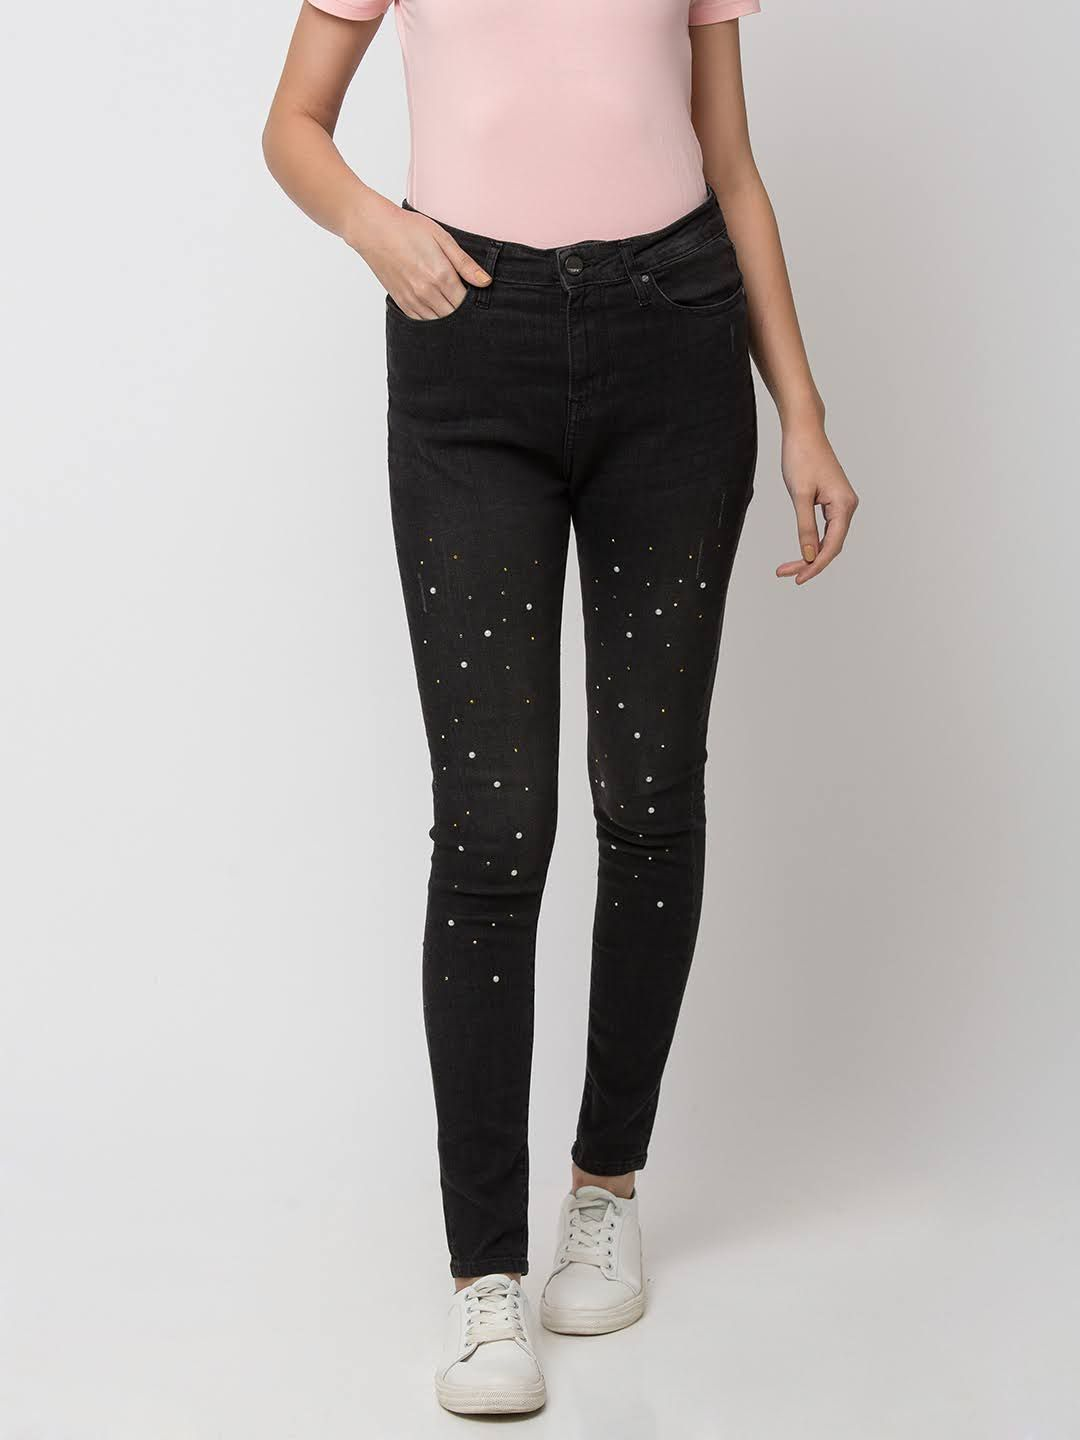 Spykar Cotton Black JEANS